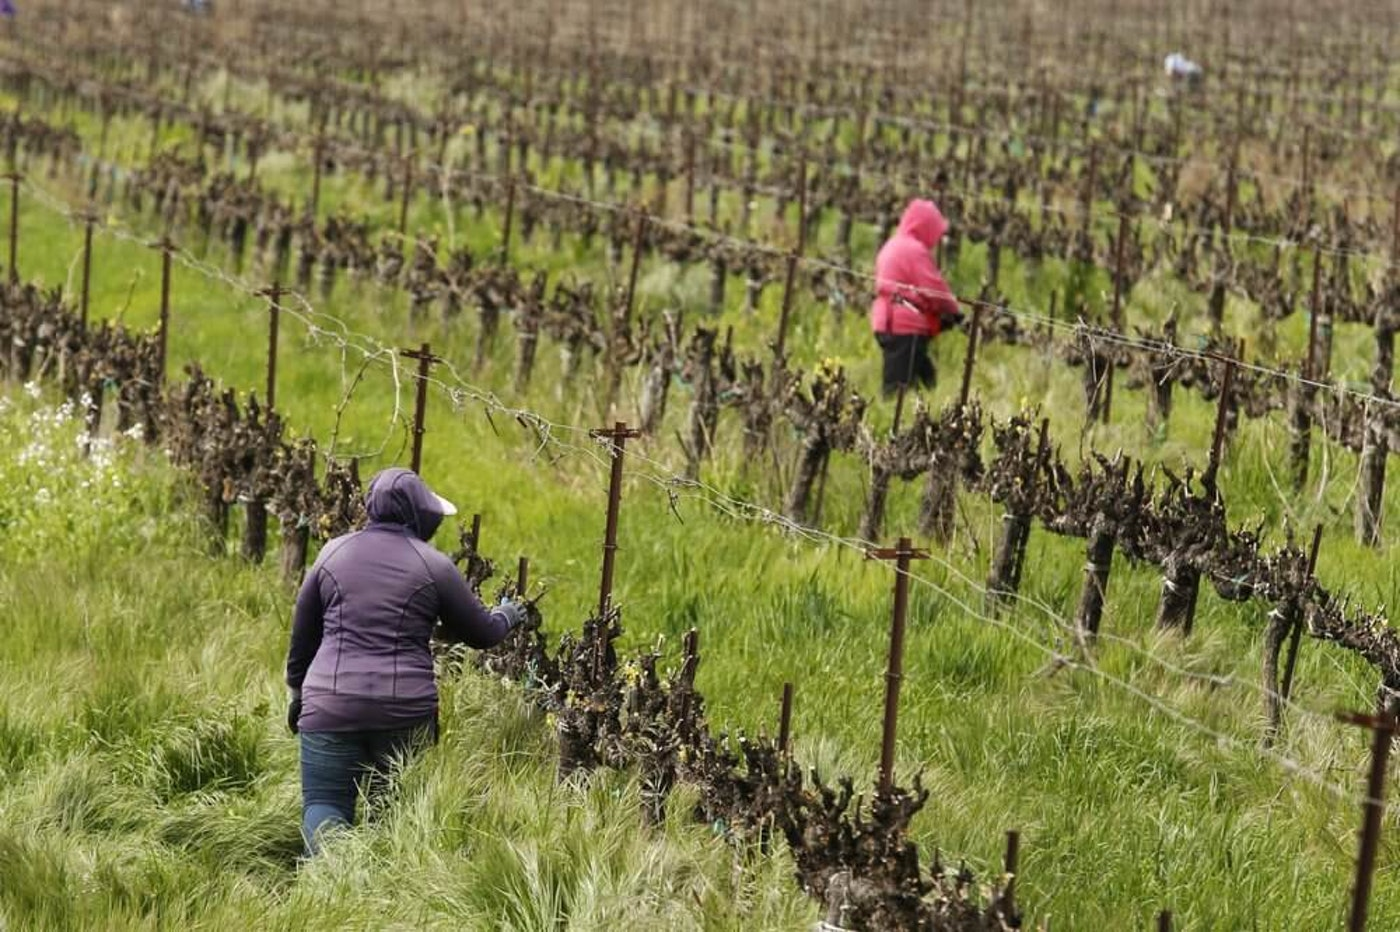 In this March 24, 2020, photo, farmworkers keep their distance from each other as they work at the Heringer Estates Family Vineyards and Winery in Clarksburg, Calif. Farms continue to operate as essential businesses that supply food to California and much of the country as schools, restaurants and stores shutter over the coronavirus. But some workers are anxious about the virus spreading among them and their families. Steve Heringer, general manager of the 152-year-old family owned business said workers now have more hand sanitizer and already use their own gloves for field work. (AP Photo/Rich Pedroncelli)